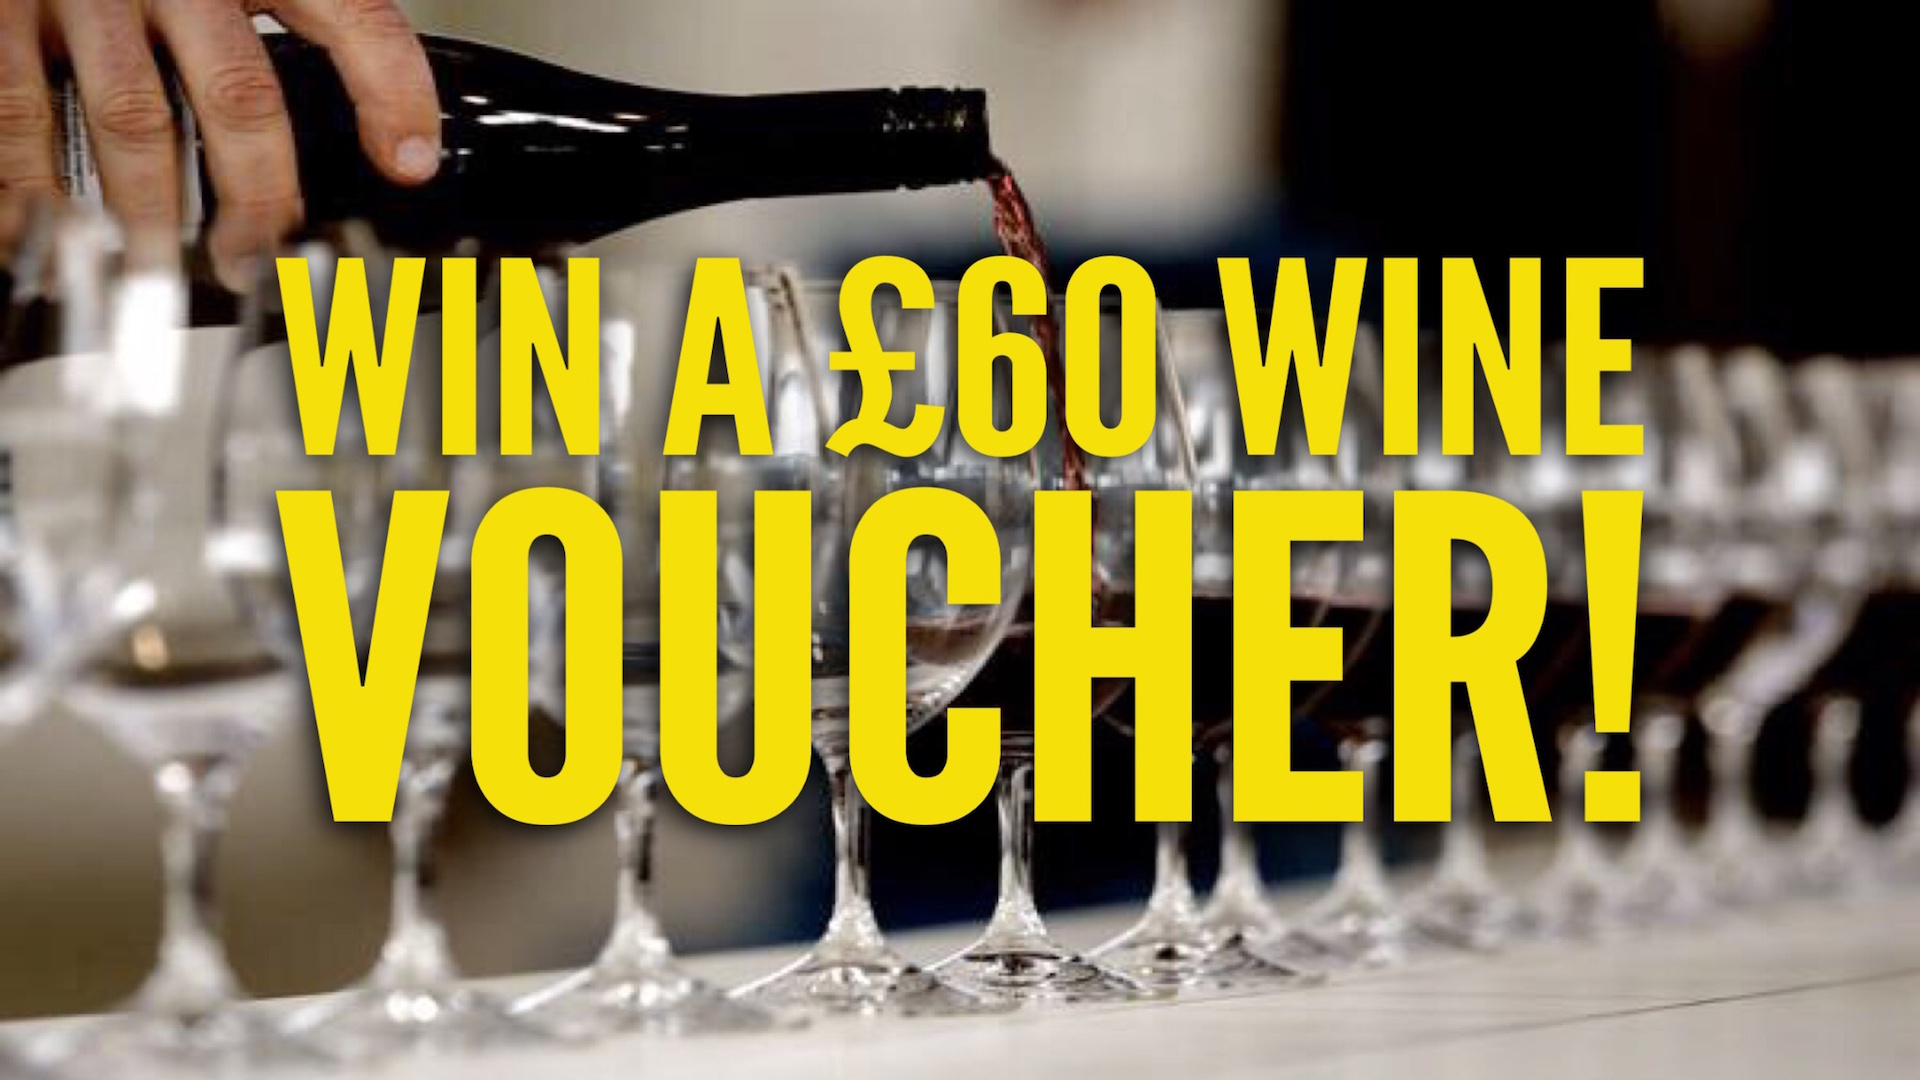 COMPETITION: Win a £60 wine voucher!